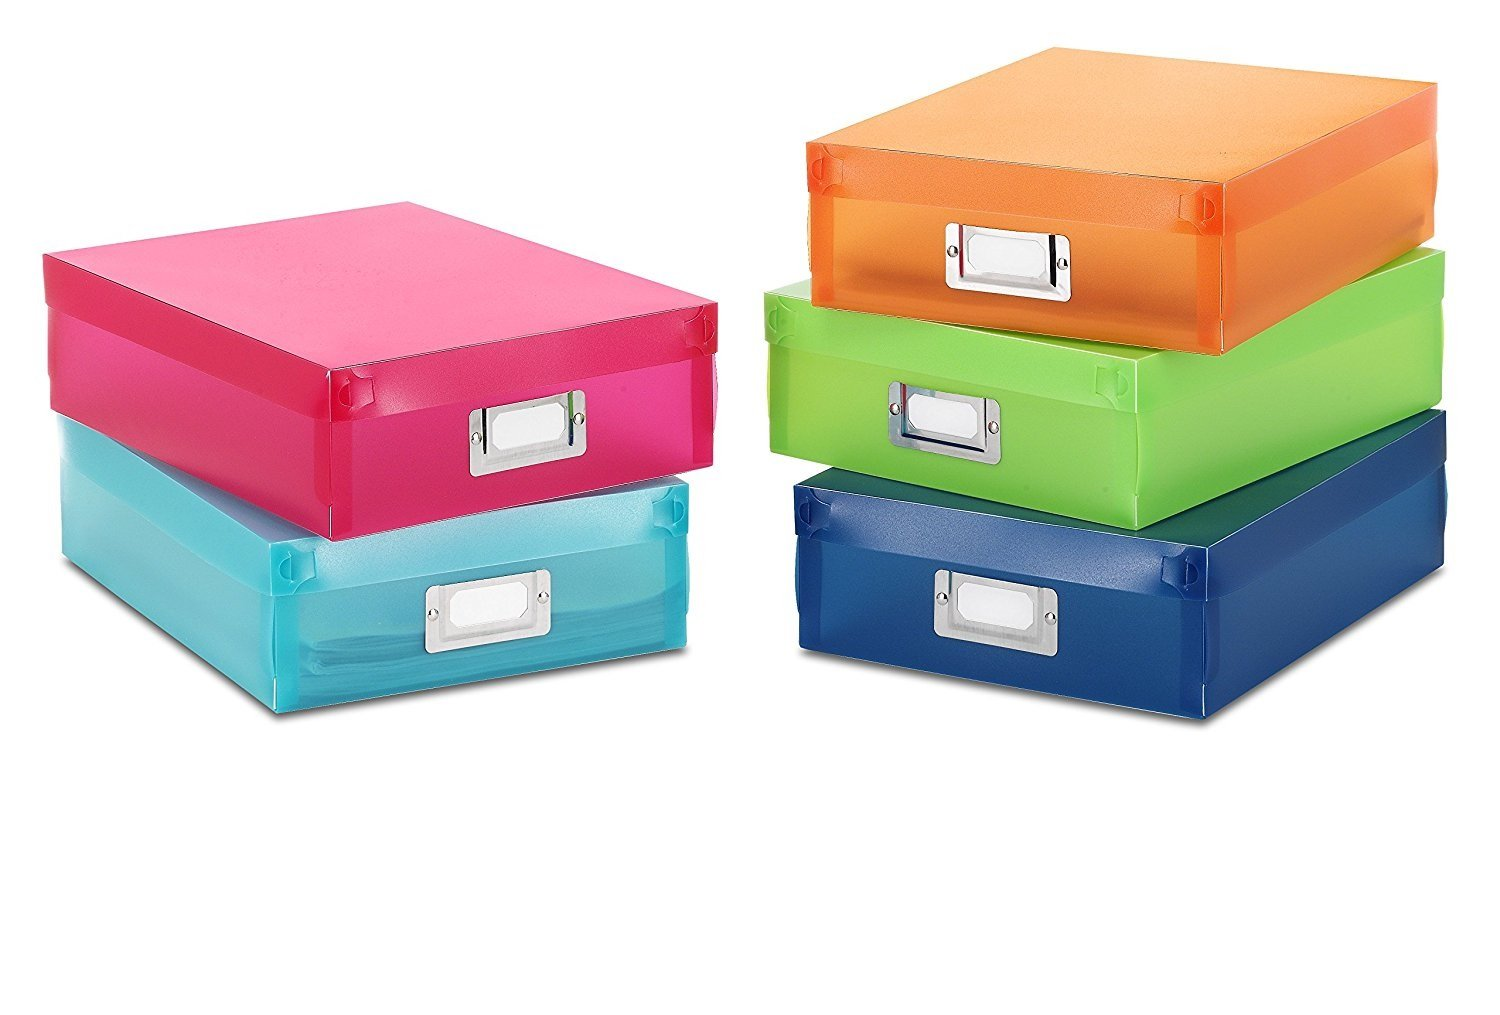 Set of 5 Durable Plastic Document Boxes With Metal Id Plate | Assorted Colors | By Trenton Gifts